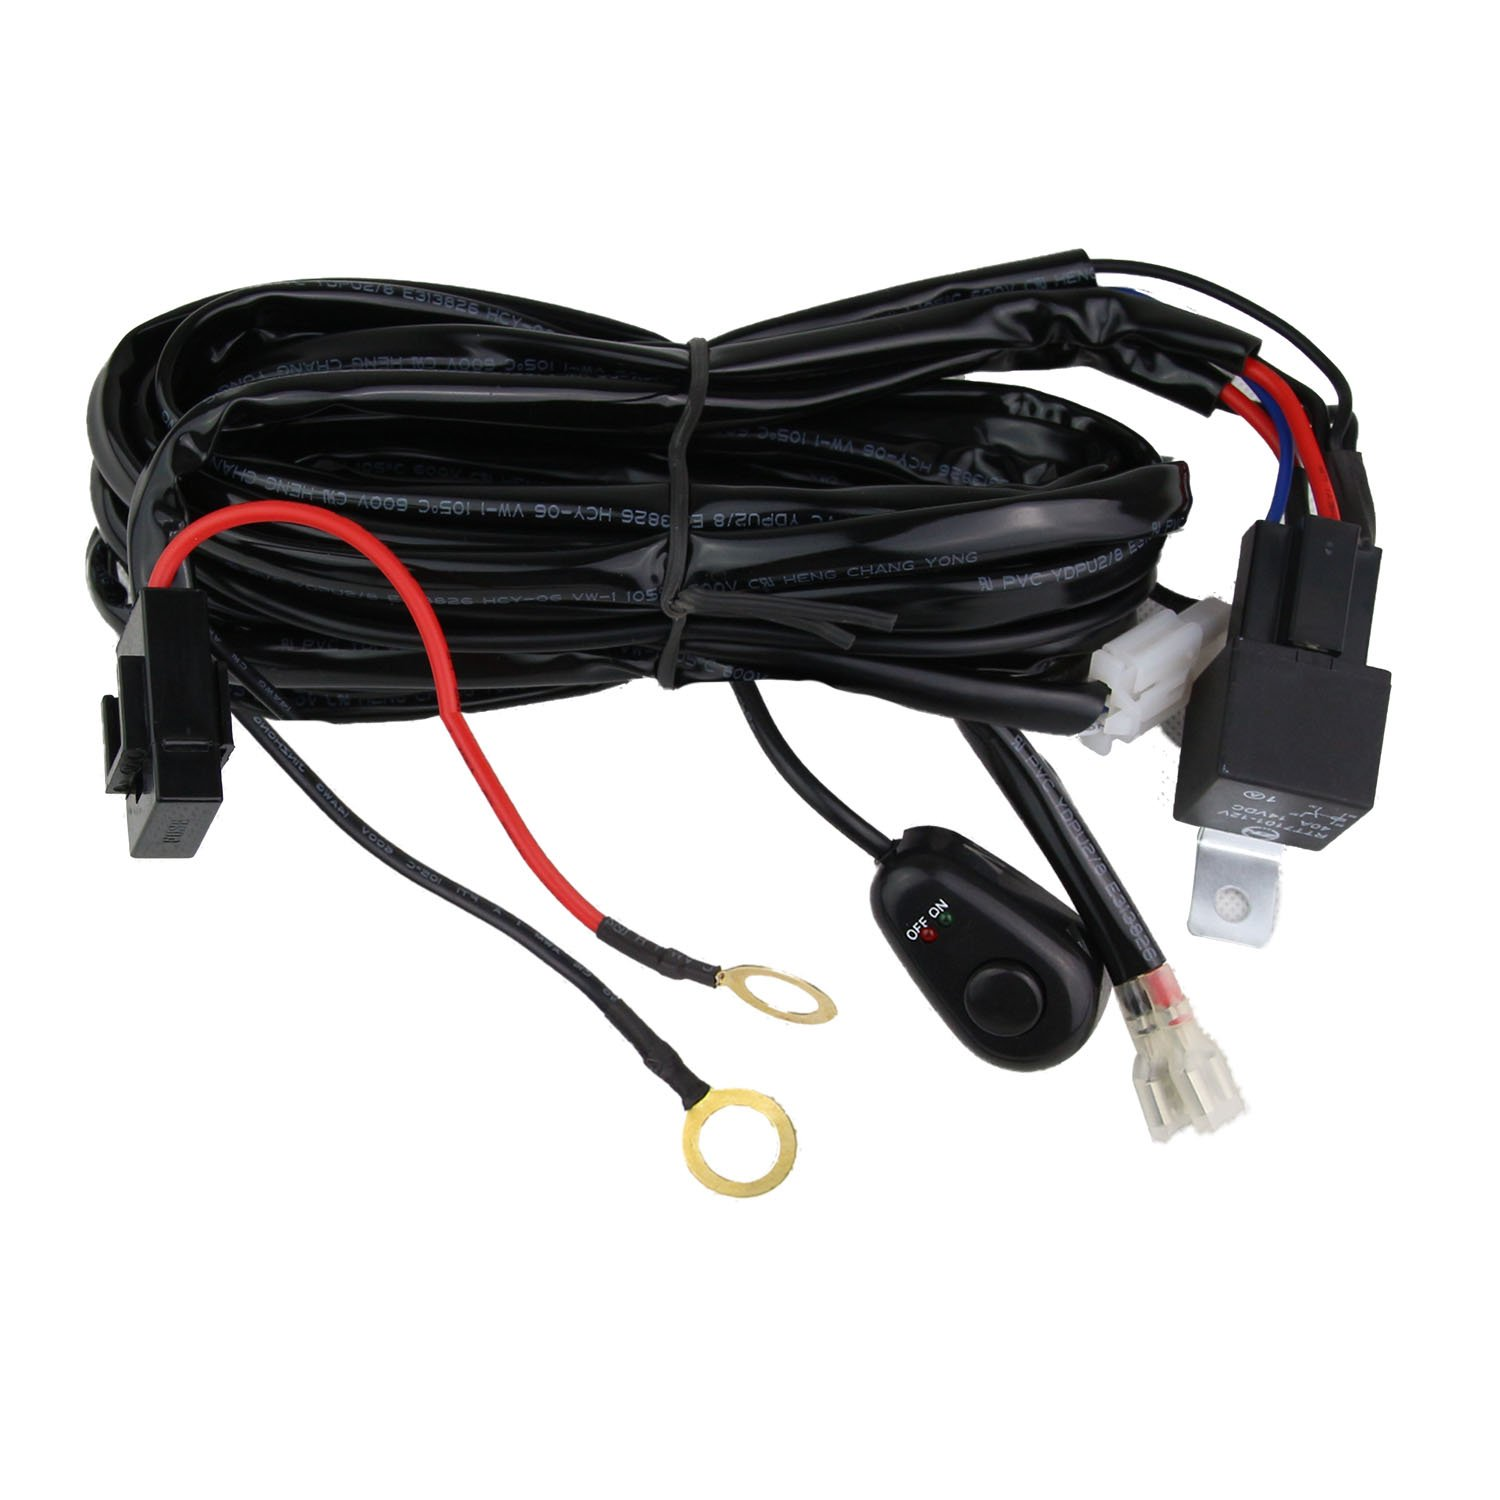 715cKKkf XL._SL1500_ amazon com wiring harnesses electrical automotive harness master wiring systems clark at cos-gaming.co